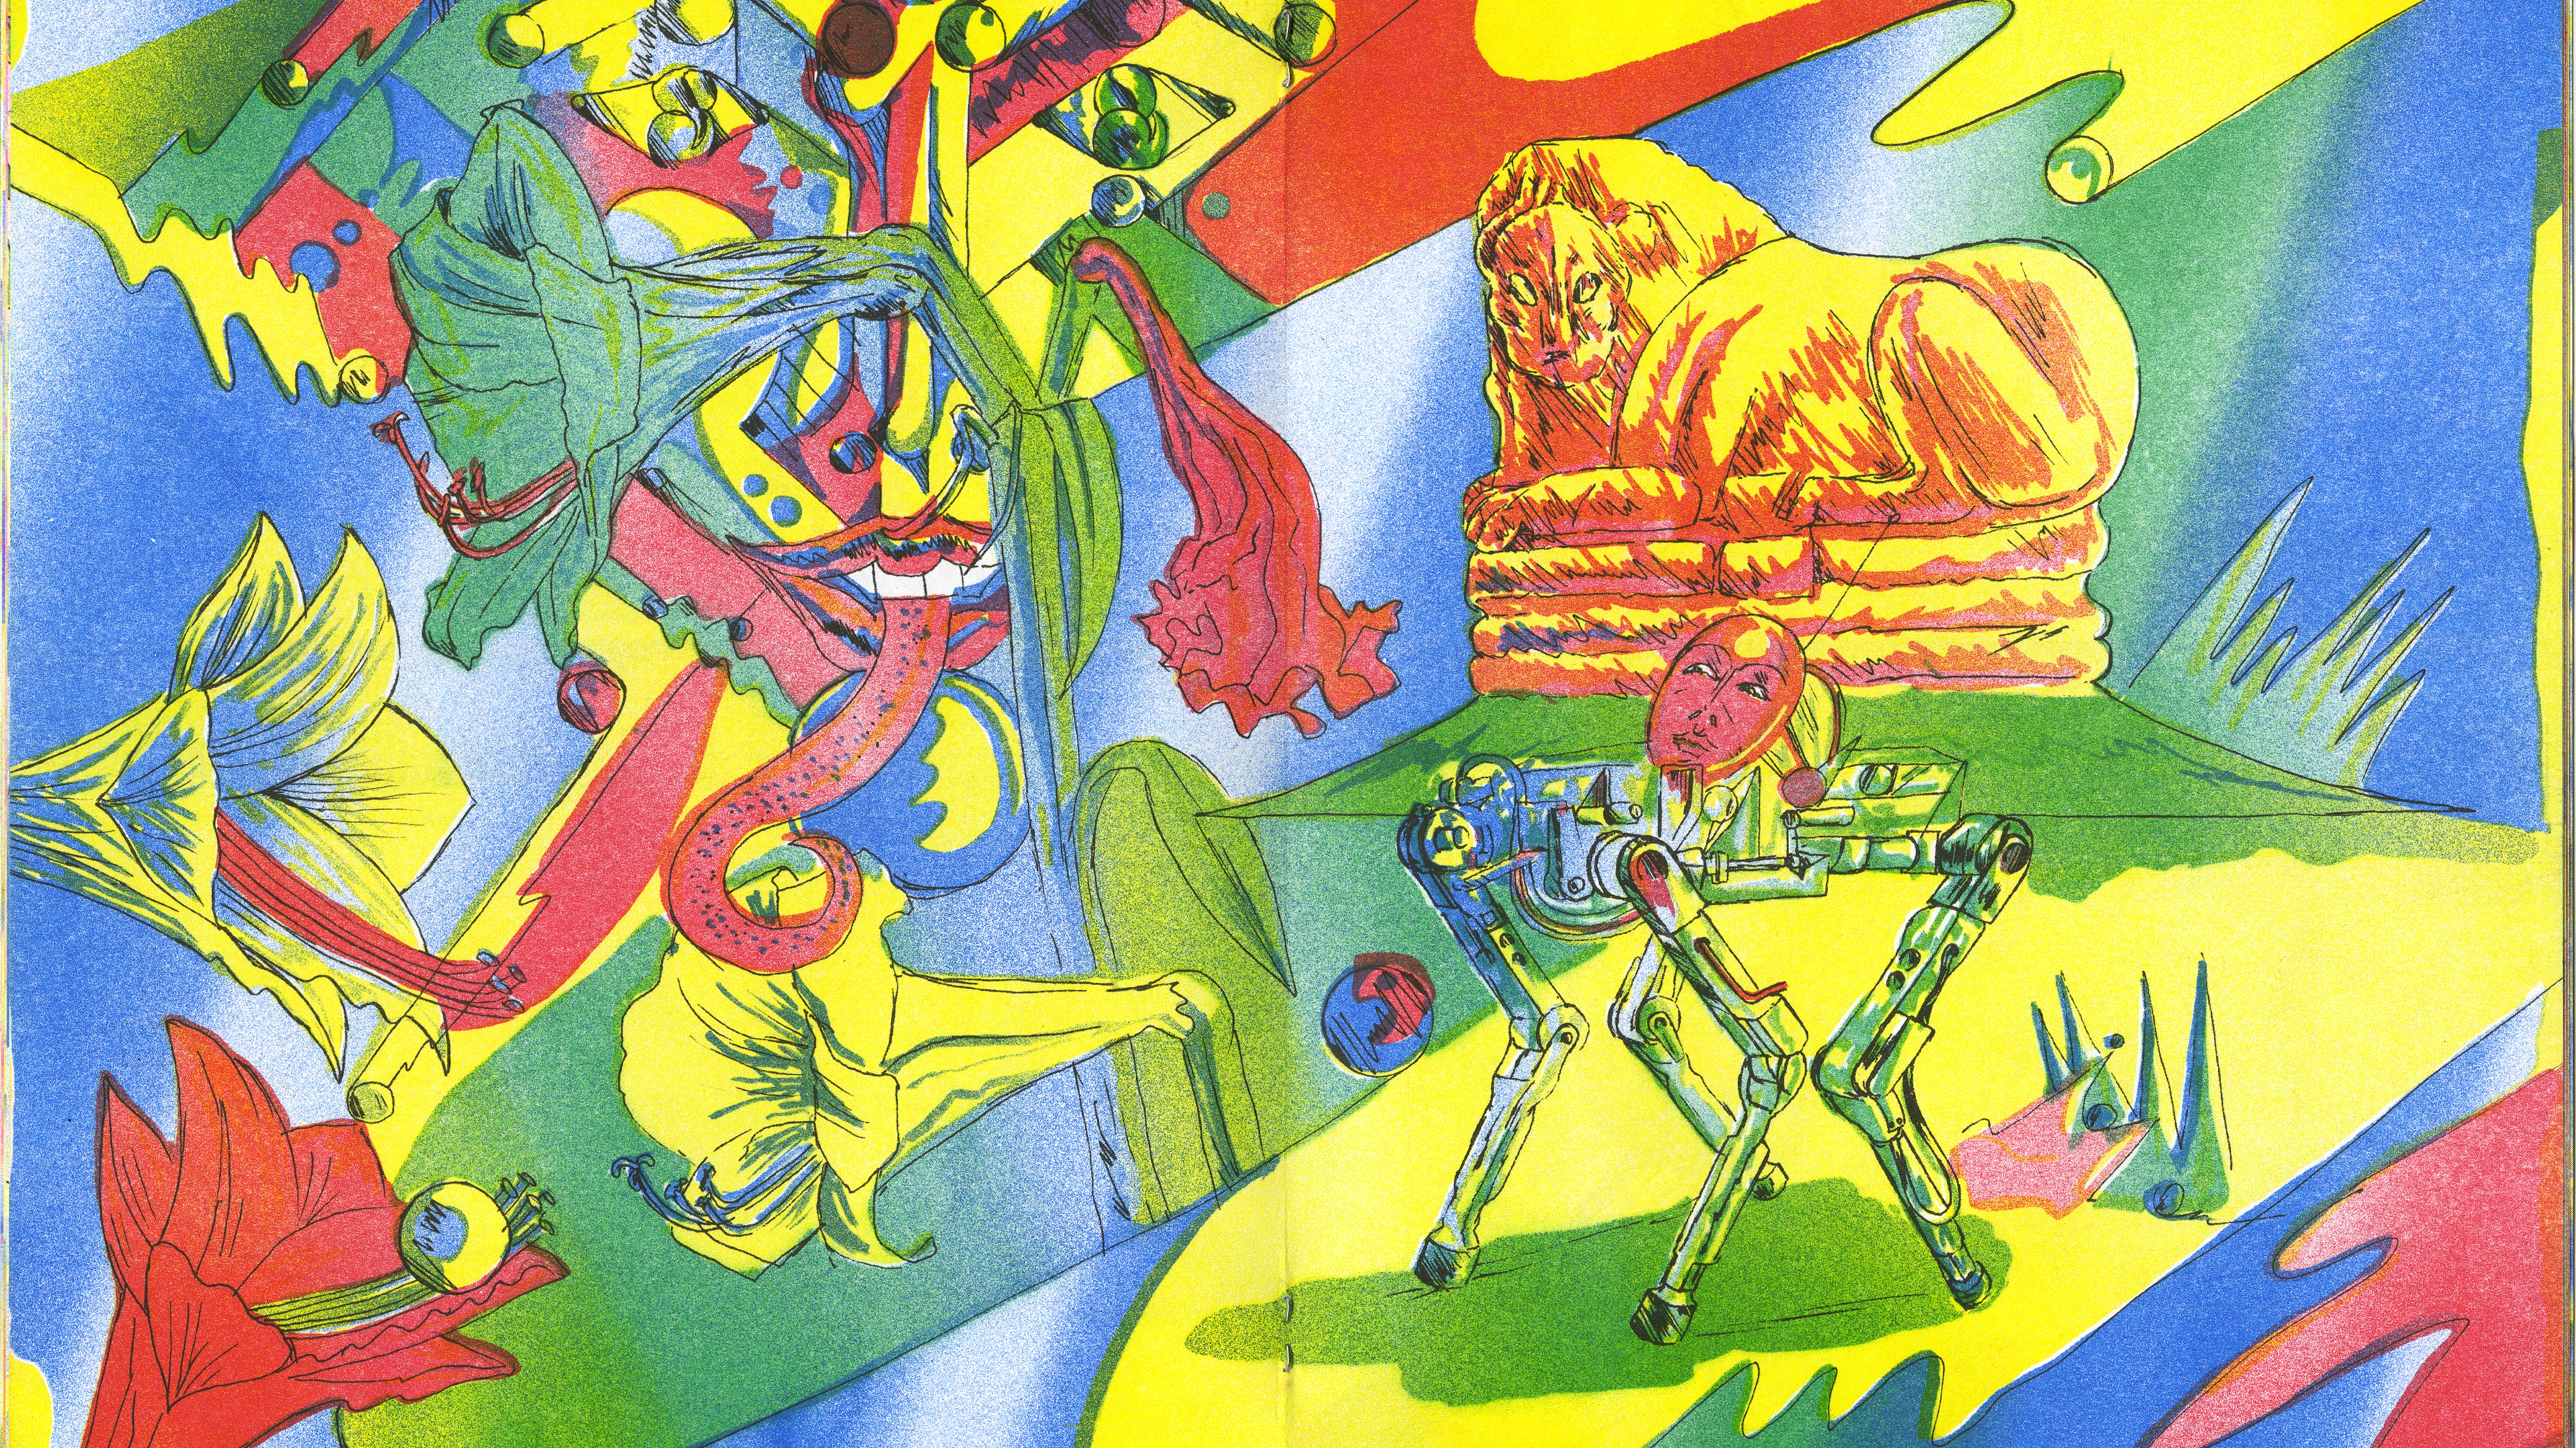 A surreal , very colorful riso print